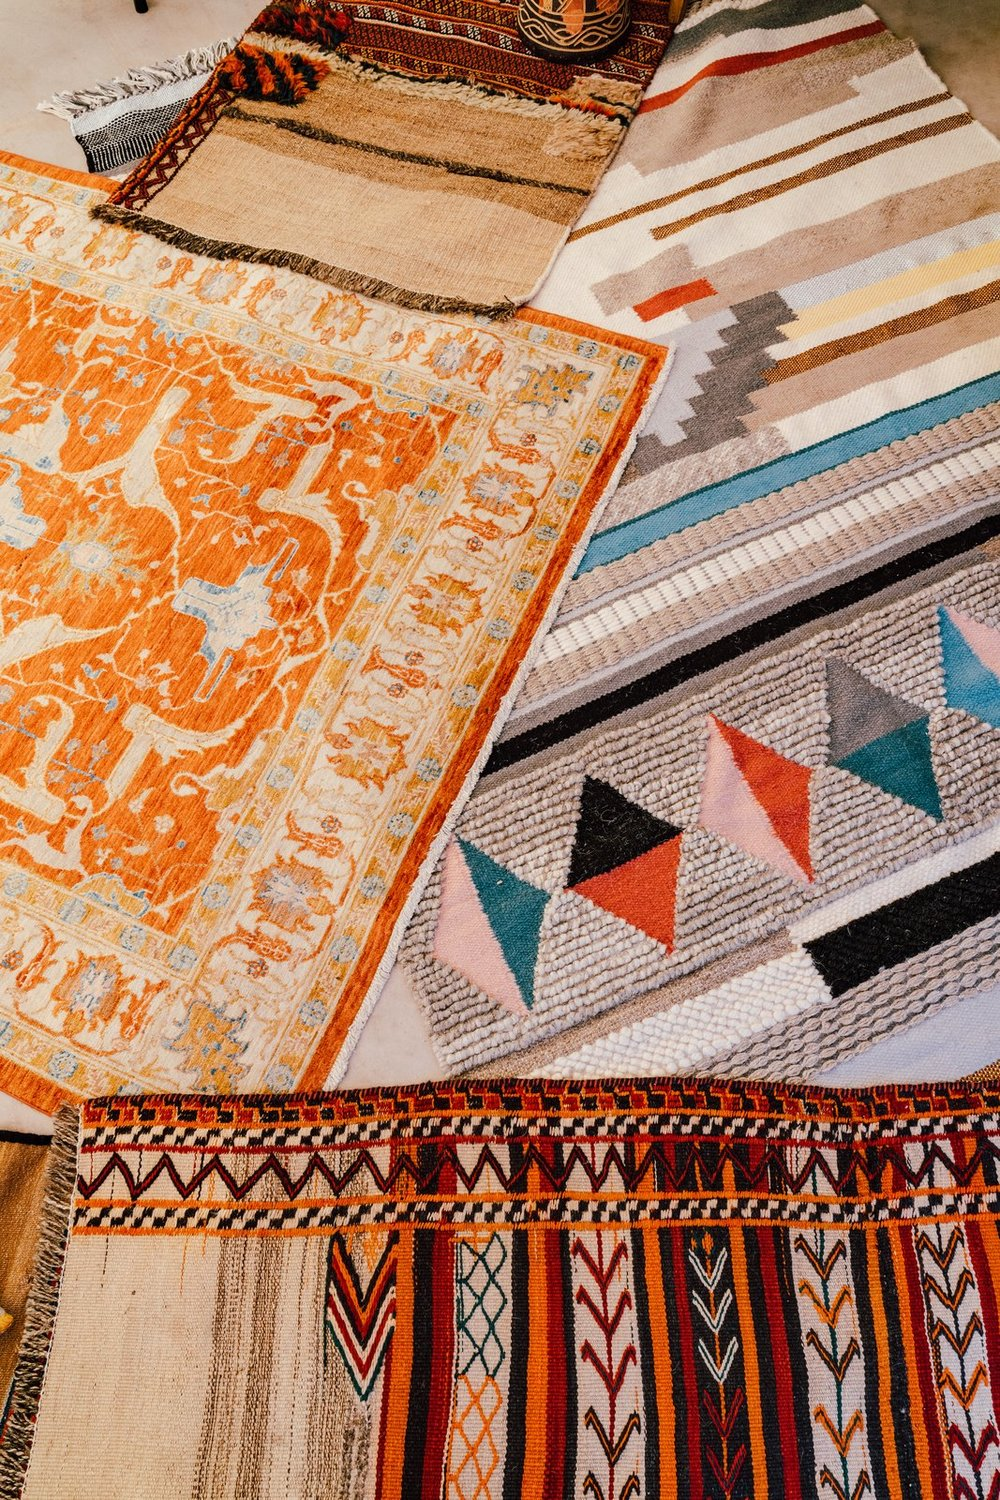 """""""Patterns, texture, and fabrics all speak to me. Whether it be rugs, throw pillows, or luxurious bedding—lovely fabrics are my happy place."""" (Tim Melideo)"""